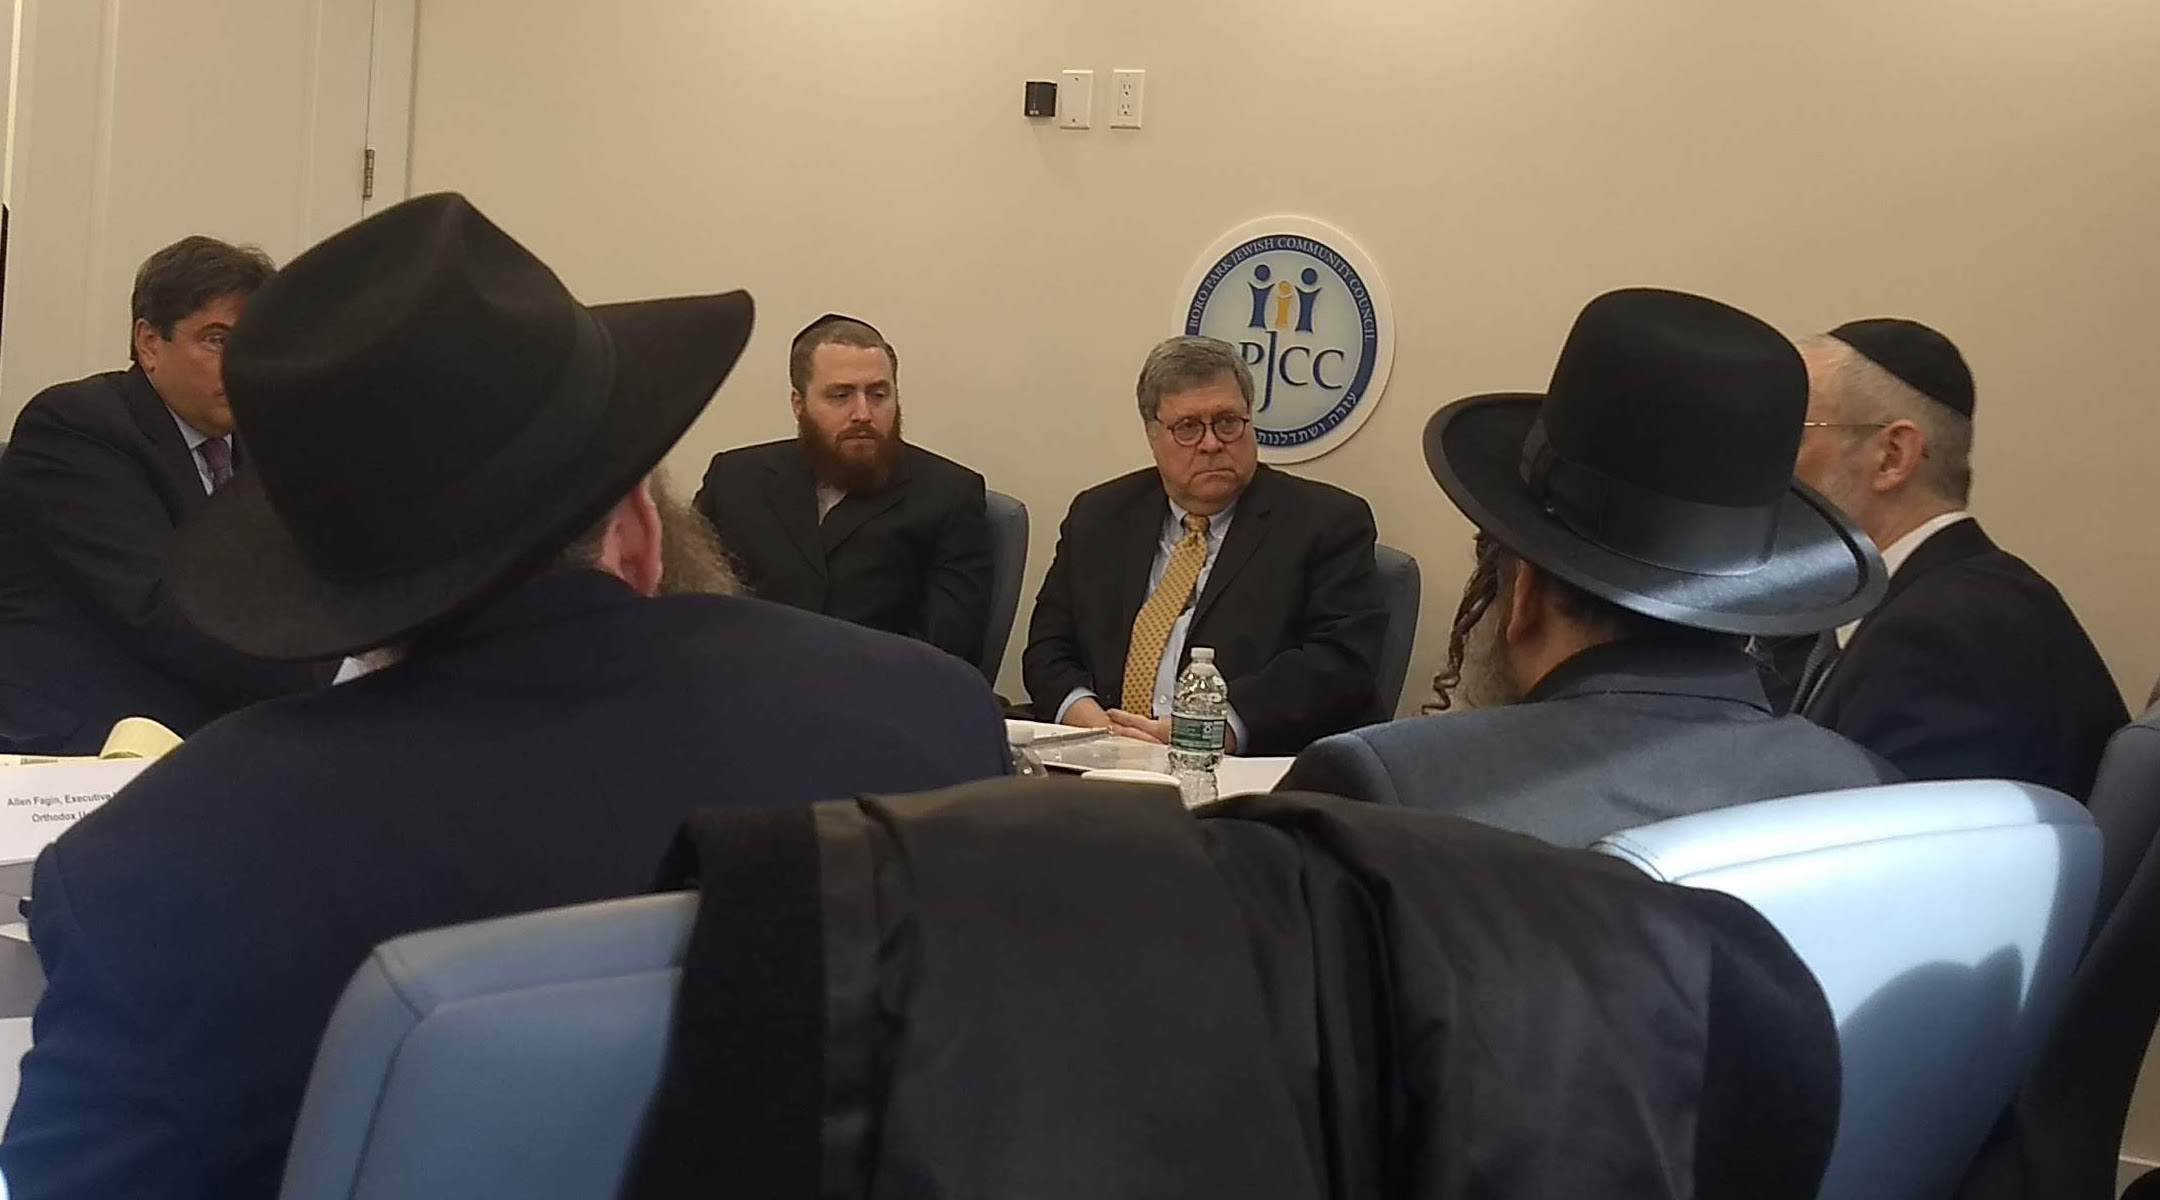 Attorney General William Barr speaks to a group of Orthodox leaders in Brooklyn on January 28, 2020. (Ben Sales)